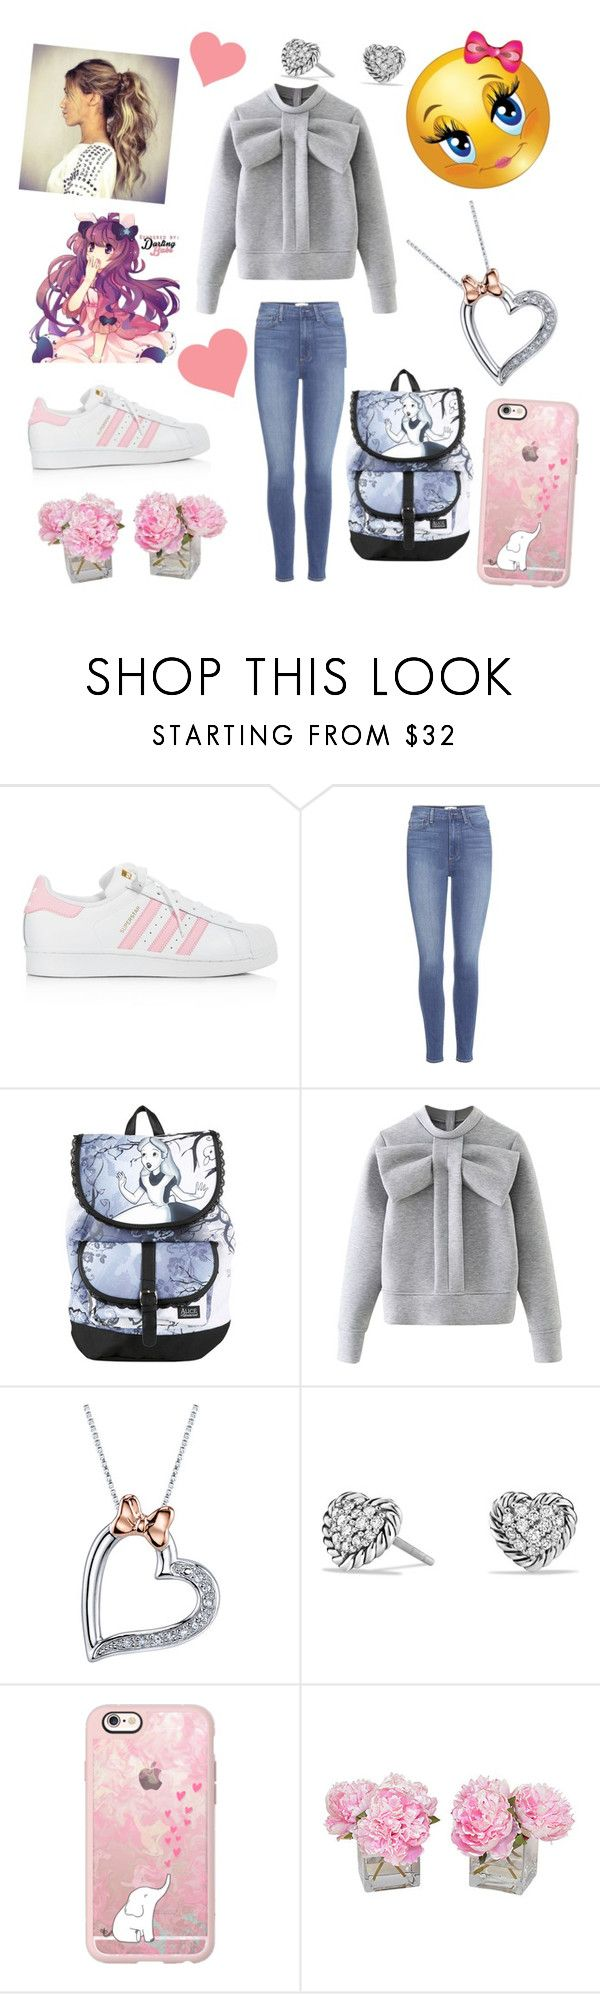 """Cute style"" by eliskiku ❤ liked on Polyvore featuring adidas, Paige Denim, Disney, WithChic, David Yurman, Casetify, The French Bee, cute and anime"